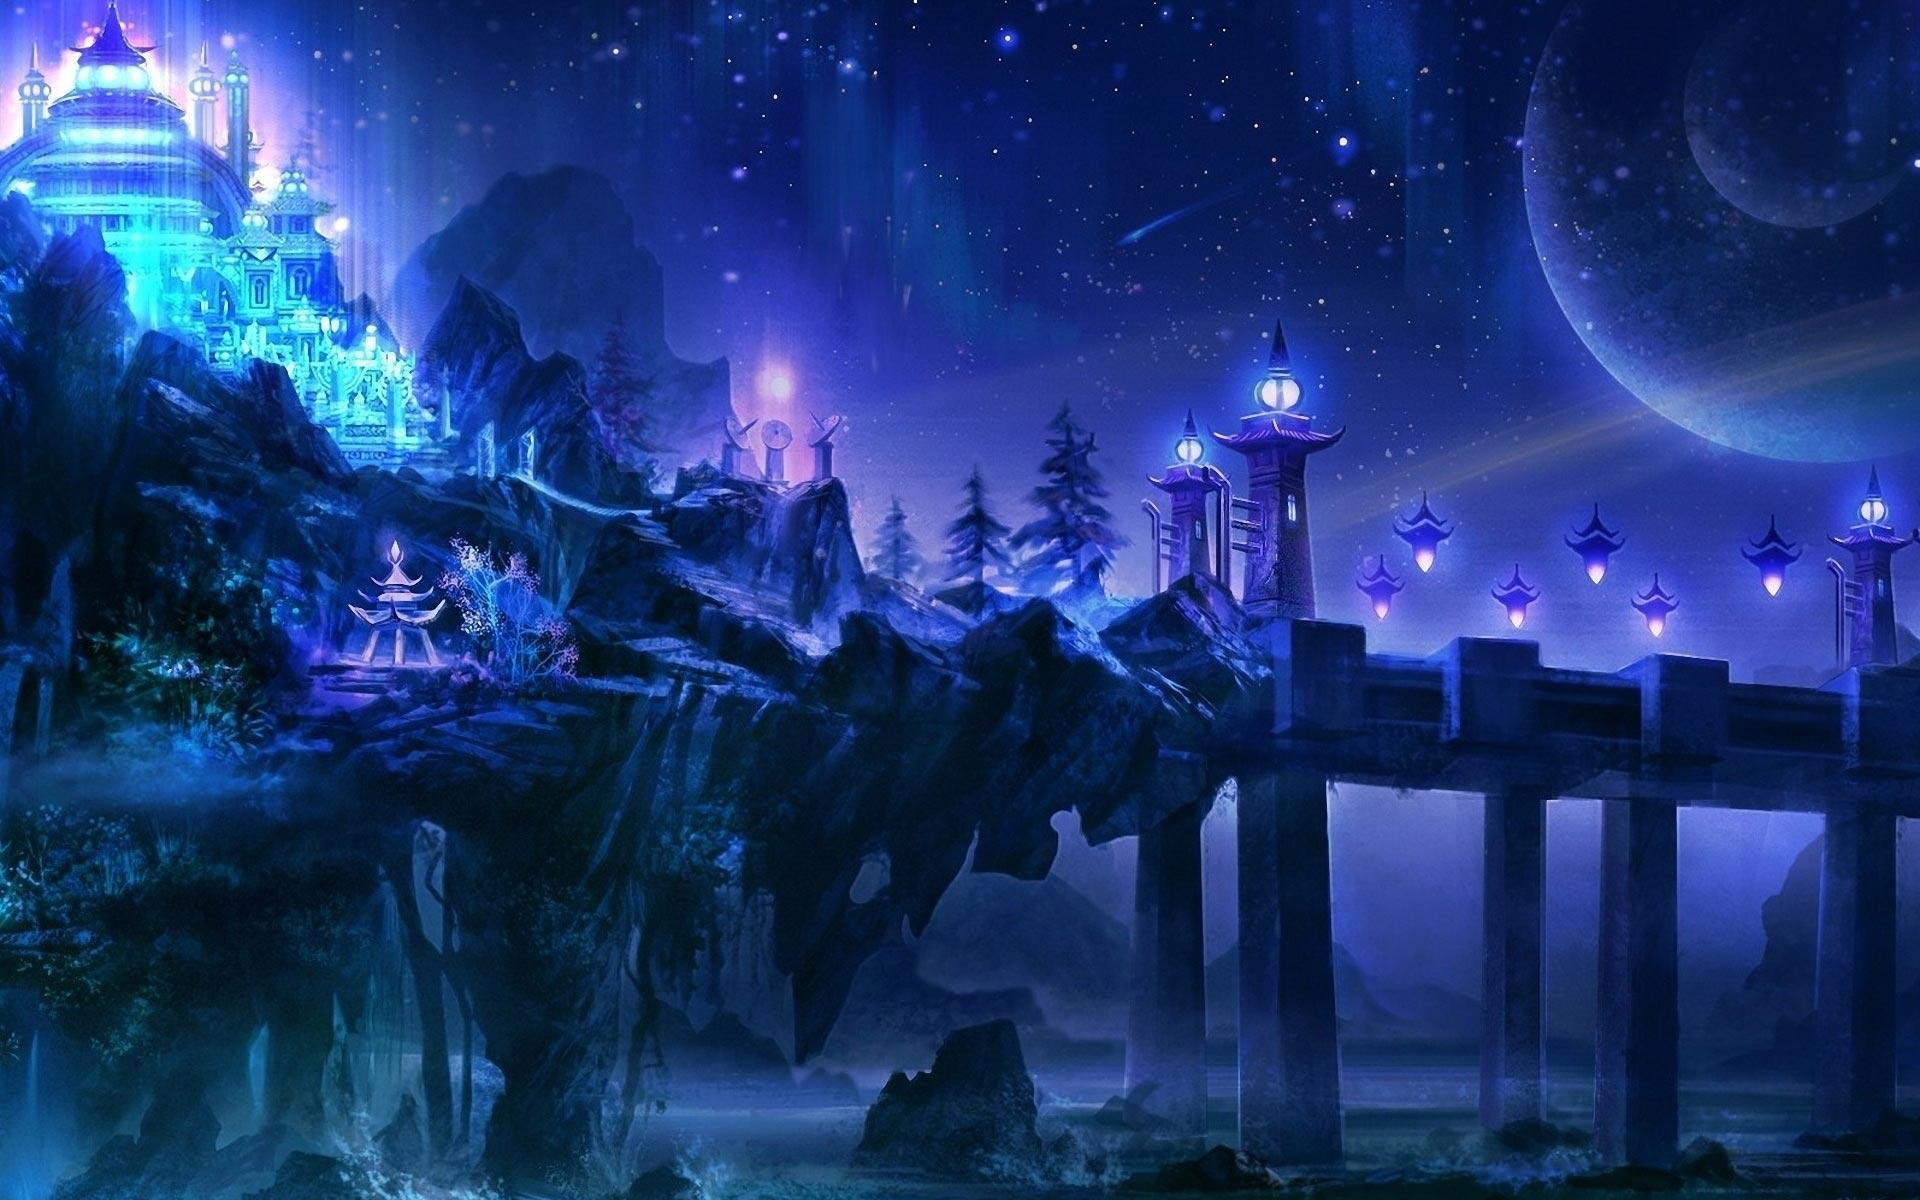 Fantasy pics wallpapers wallpaper cave - Fantasy land wallpaper ...